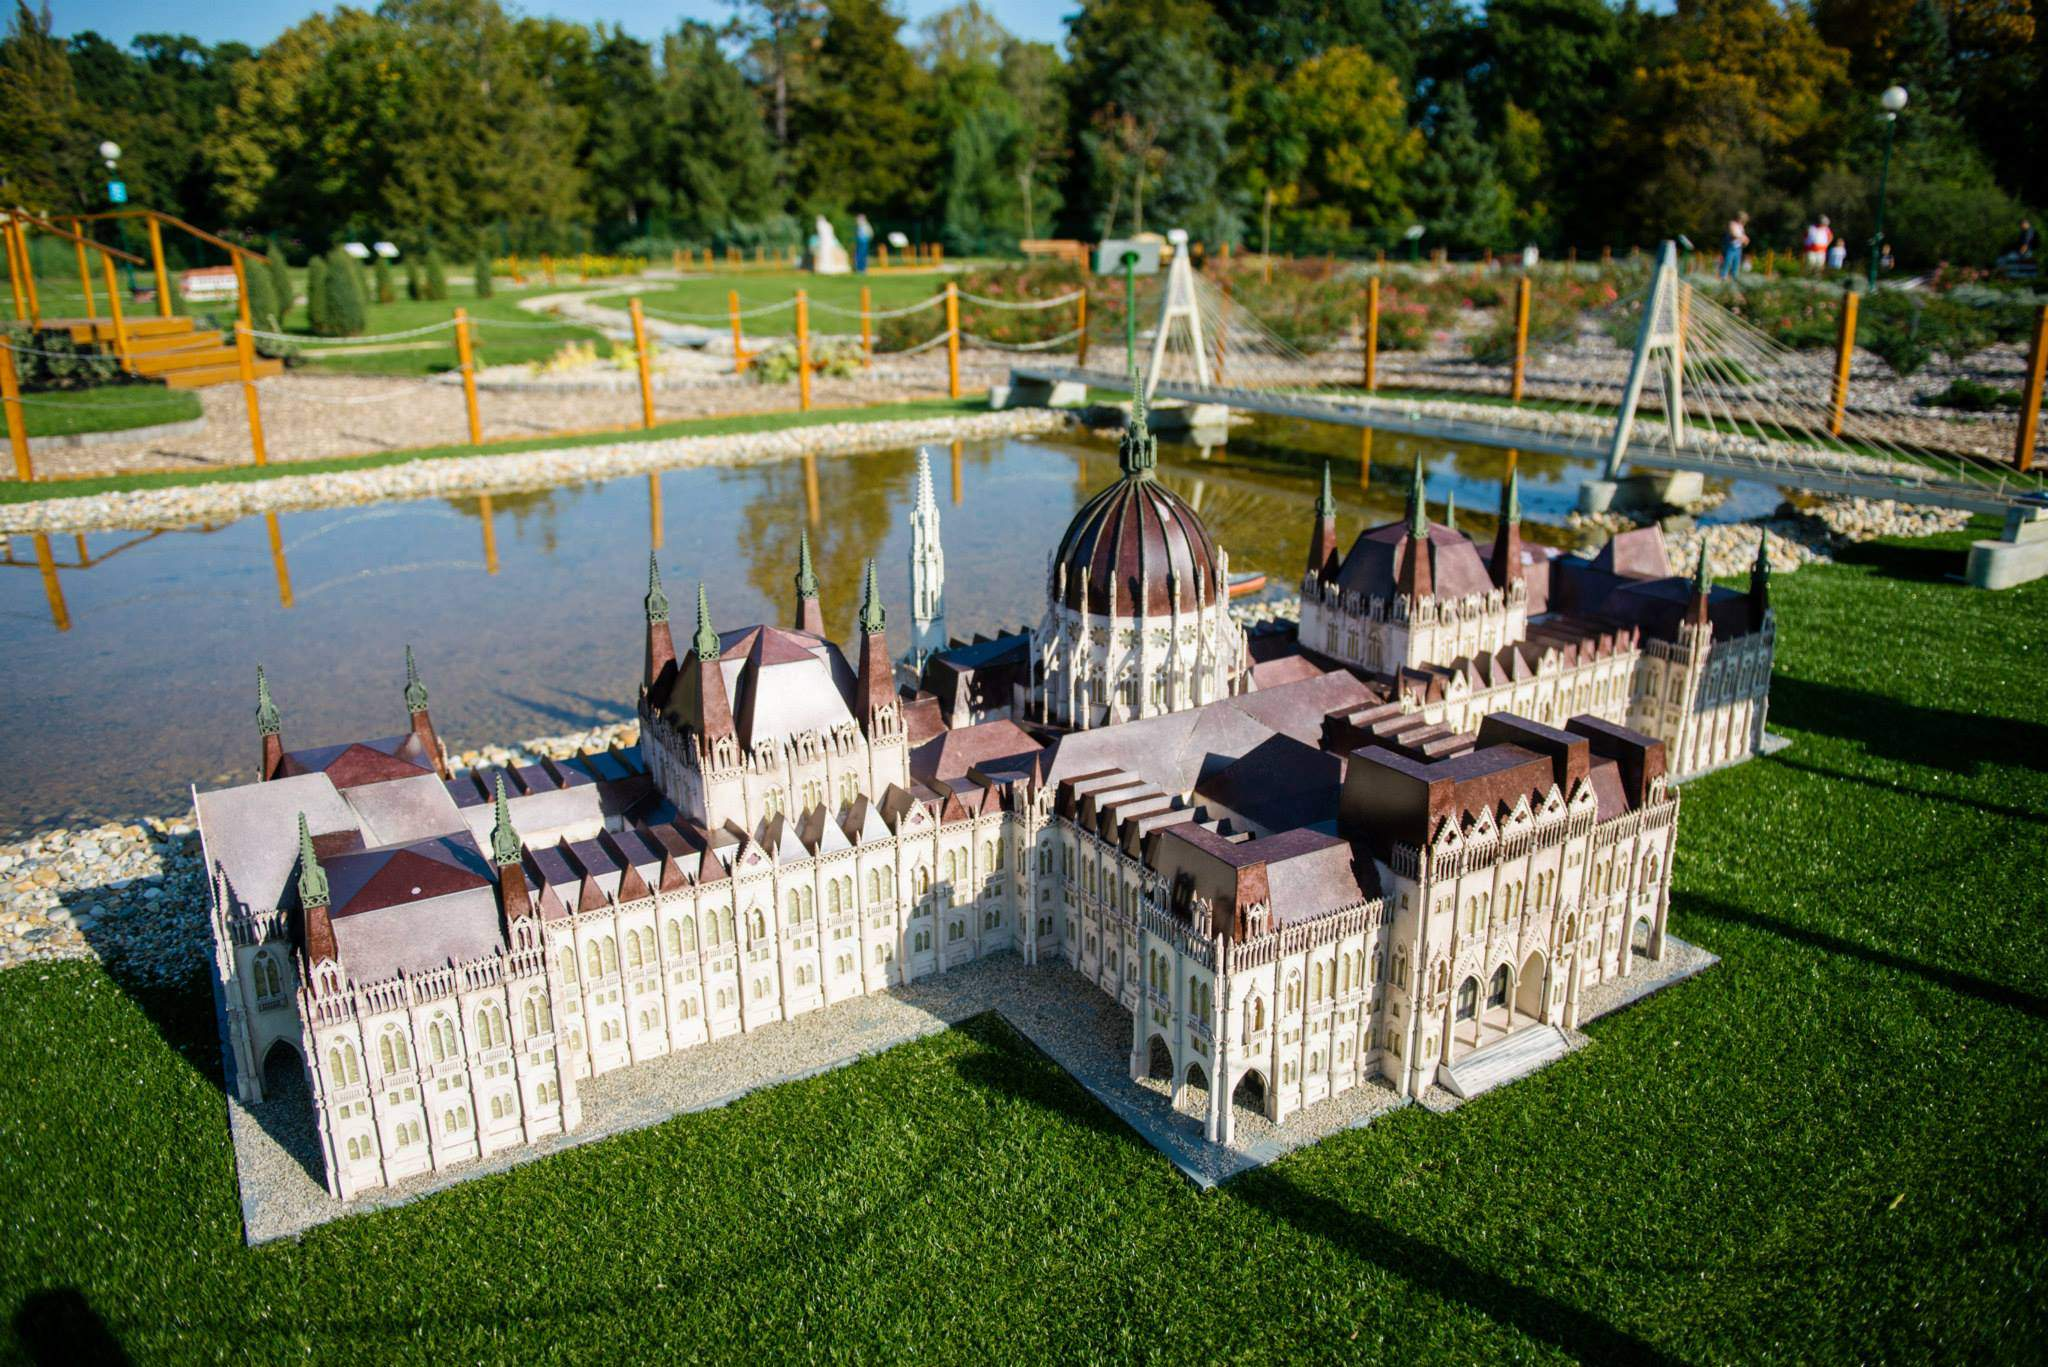 parlament parliament mini maquette miniature Szarvas